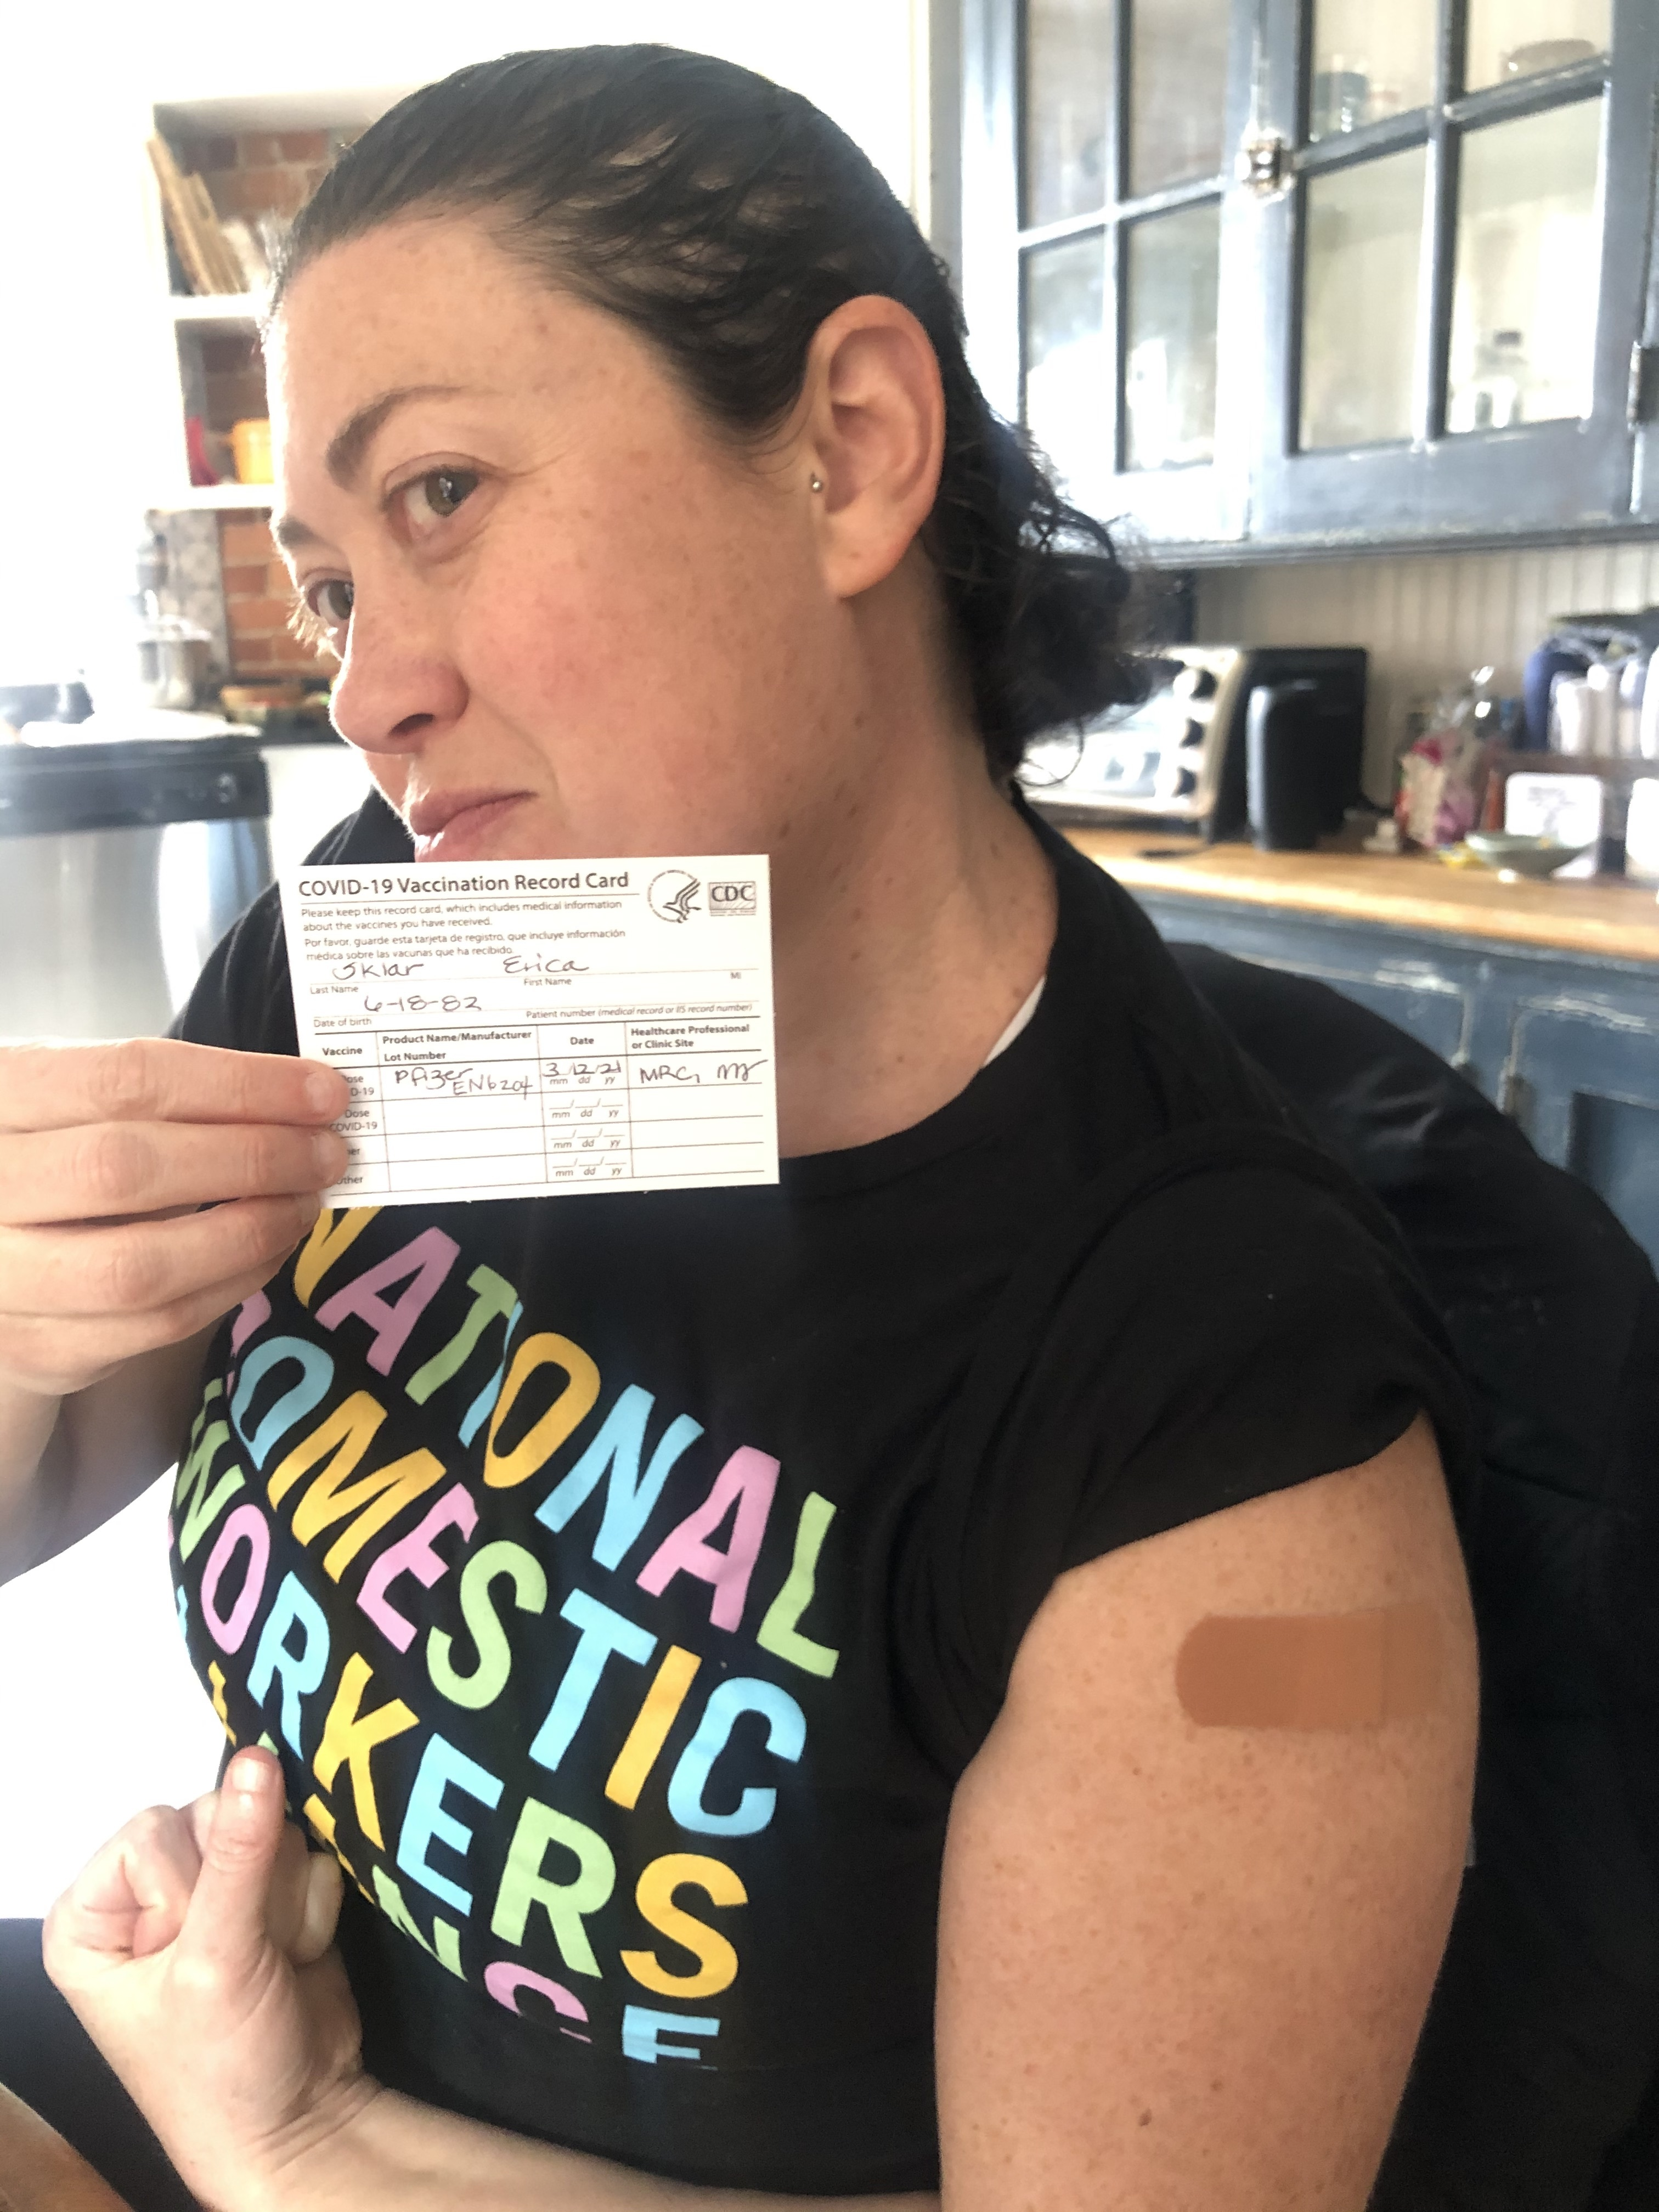 Erica makes a muscle and holds her vaccine card